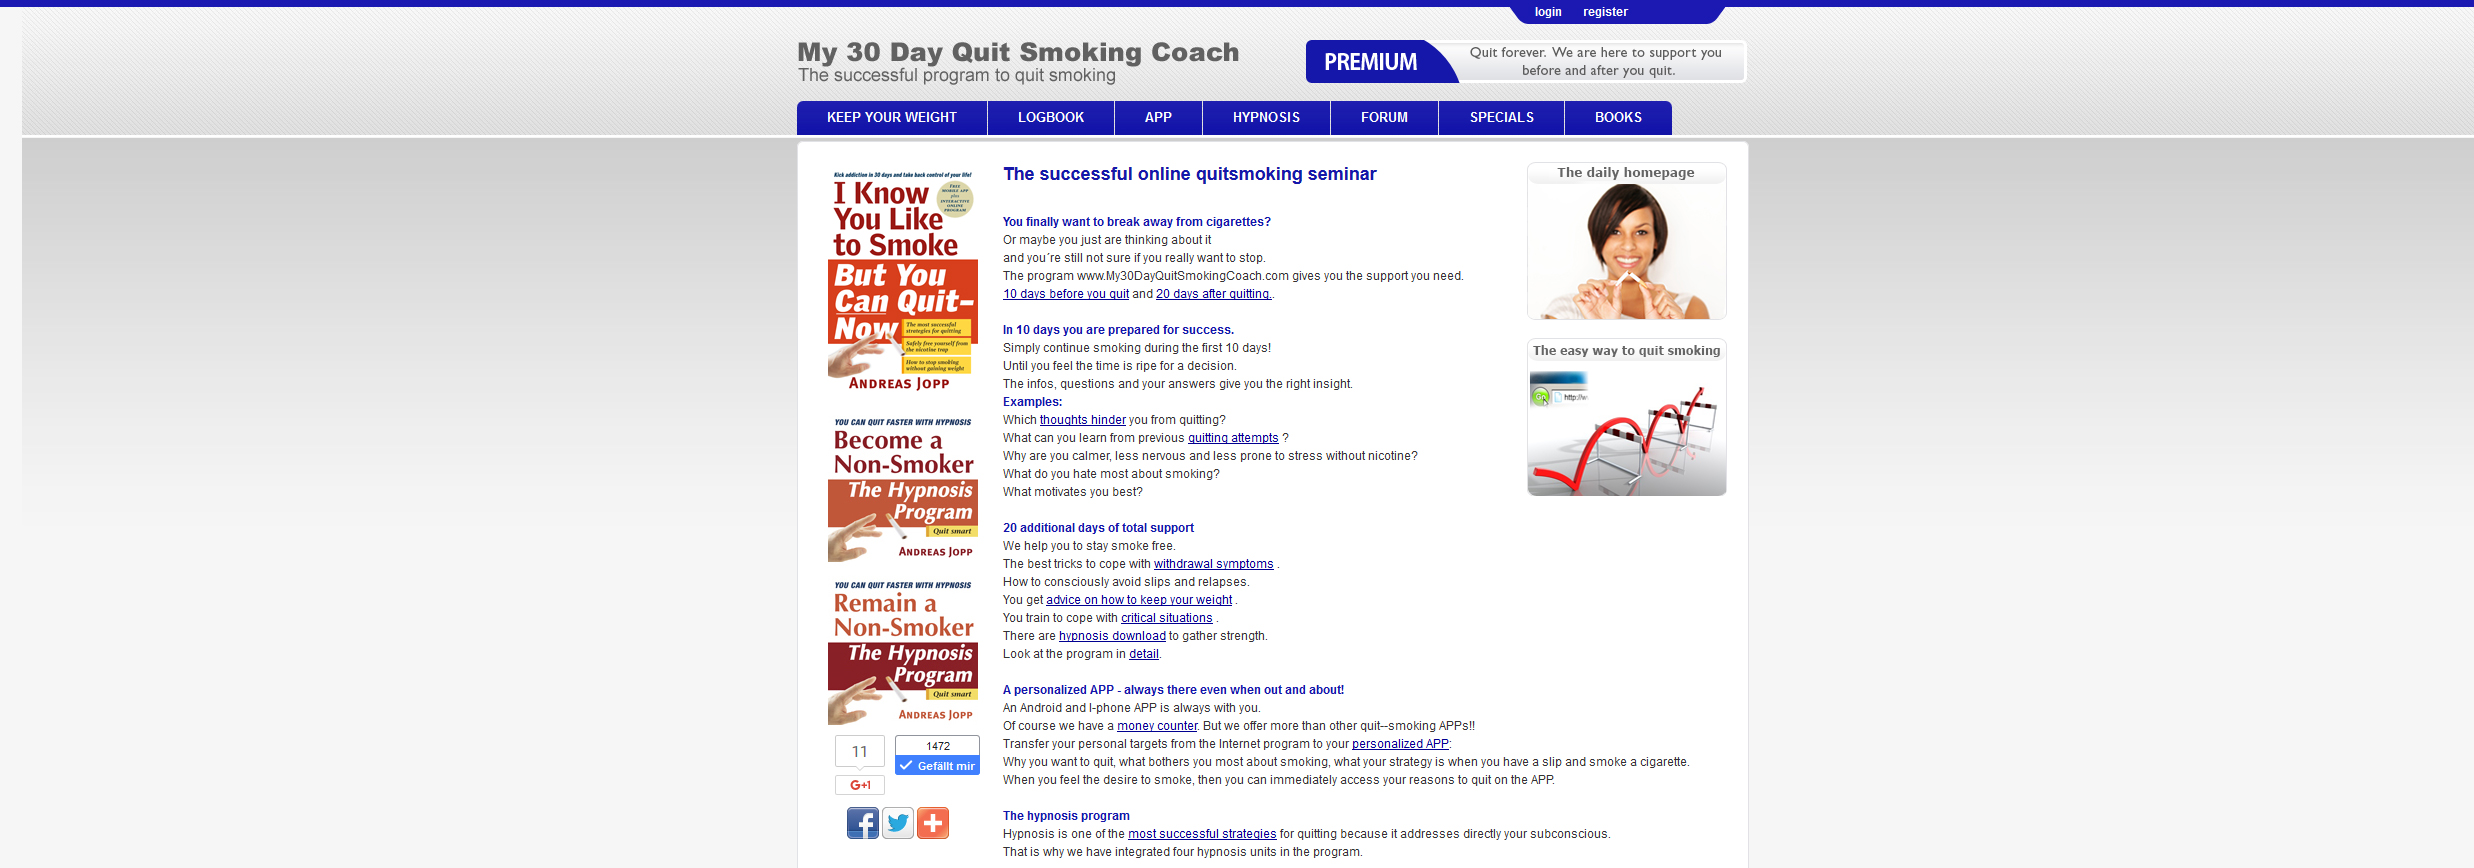 The 30-day-Internet-programm is a complete program for quitting smoking.